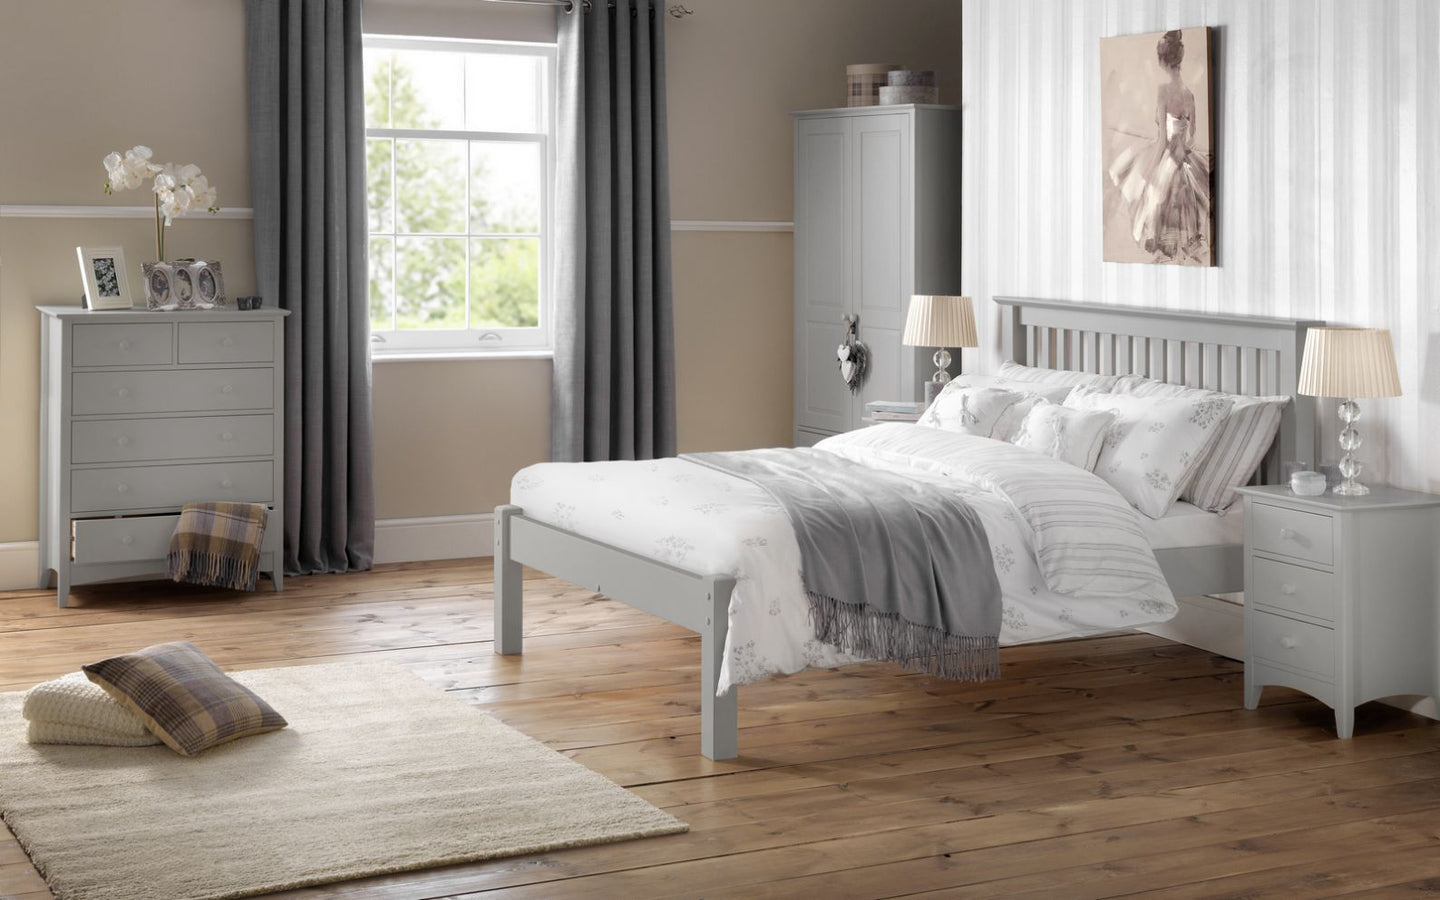 Cameo Bedroom - Dove Grey